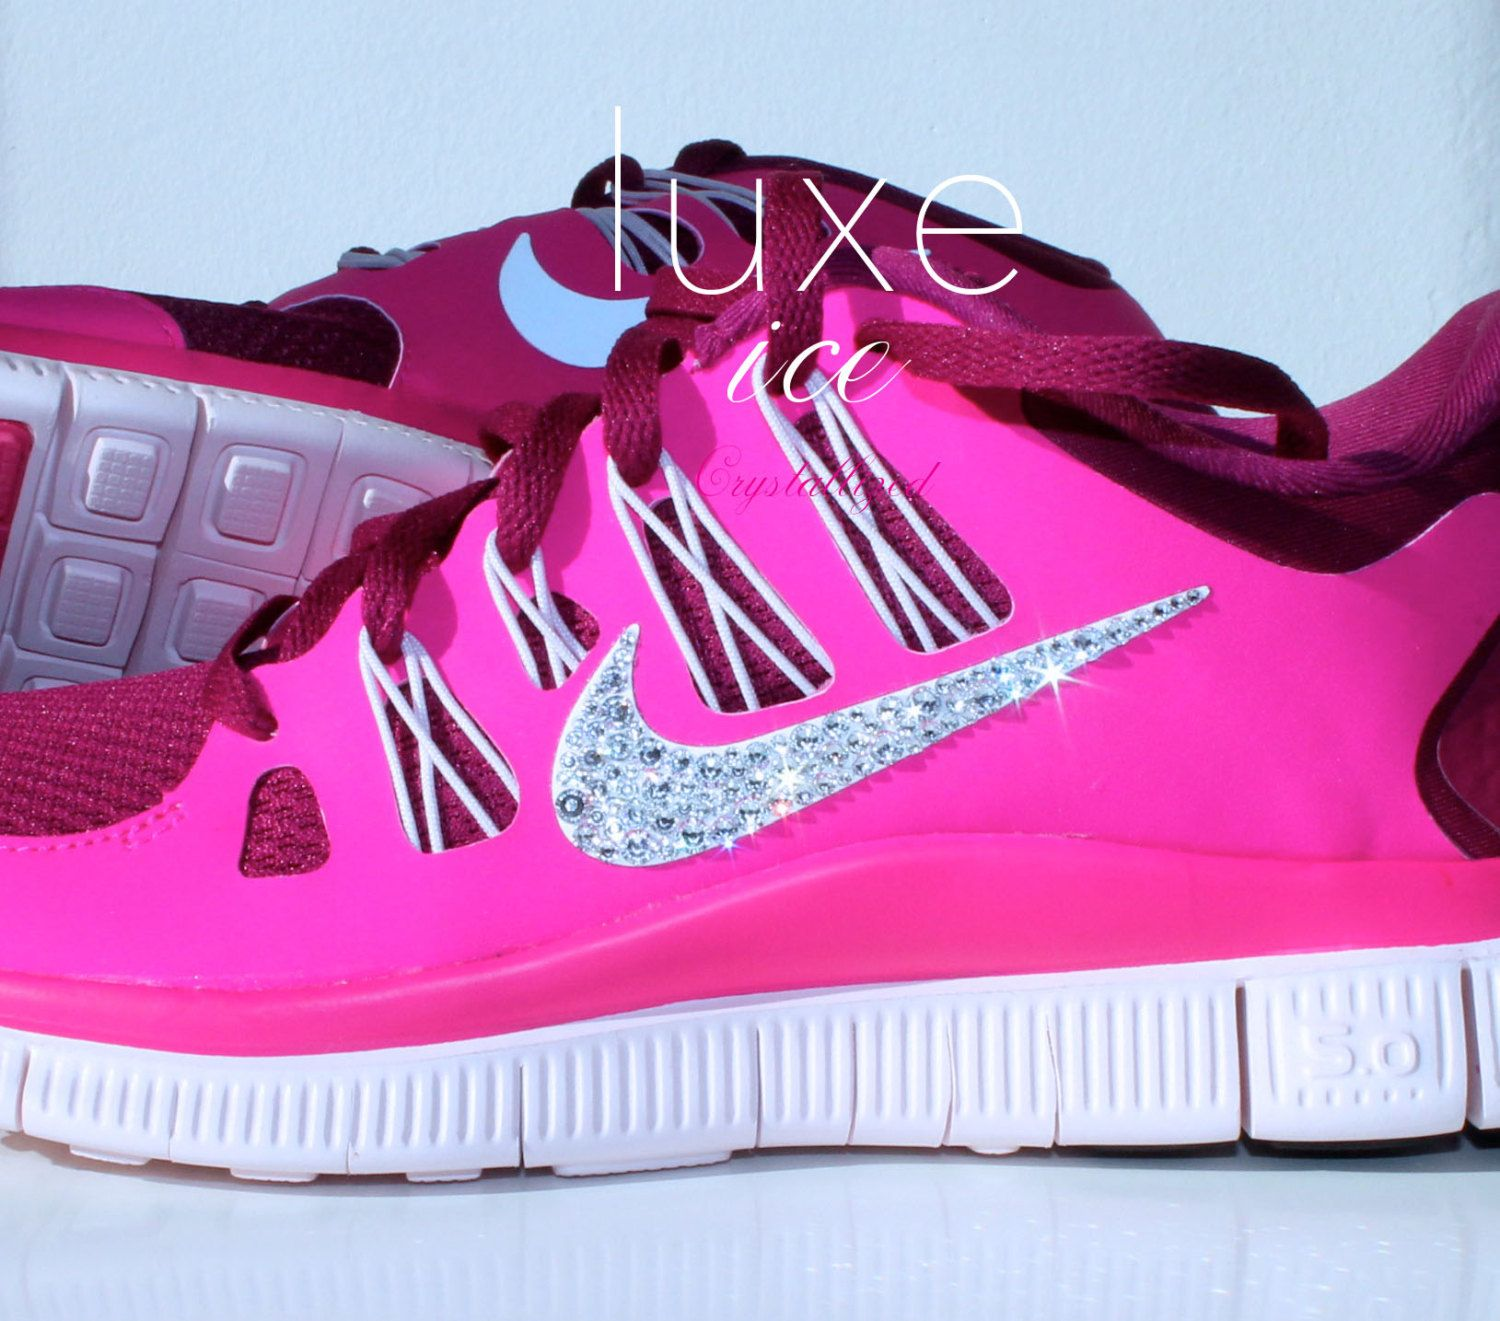 ... glitter swoosh on the hunt 0be11 11a67 where to buy nike run free 5.0  running shoes w swarovski crystals by luxeice 178.95 d2ec7 ... 4d4cc5c1a